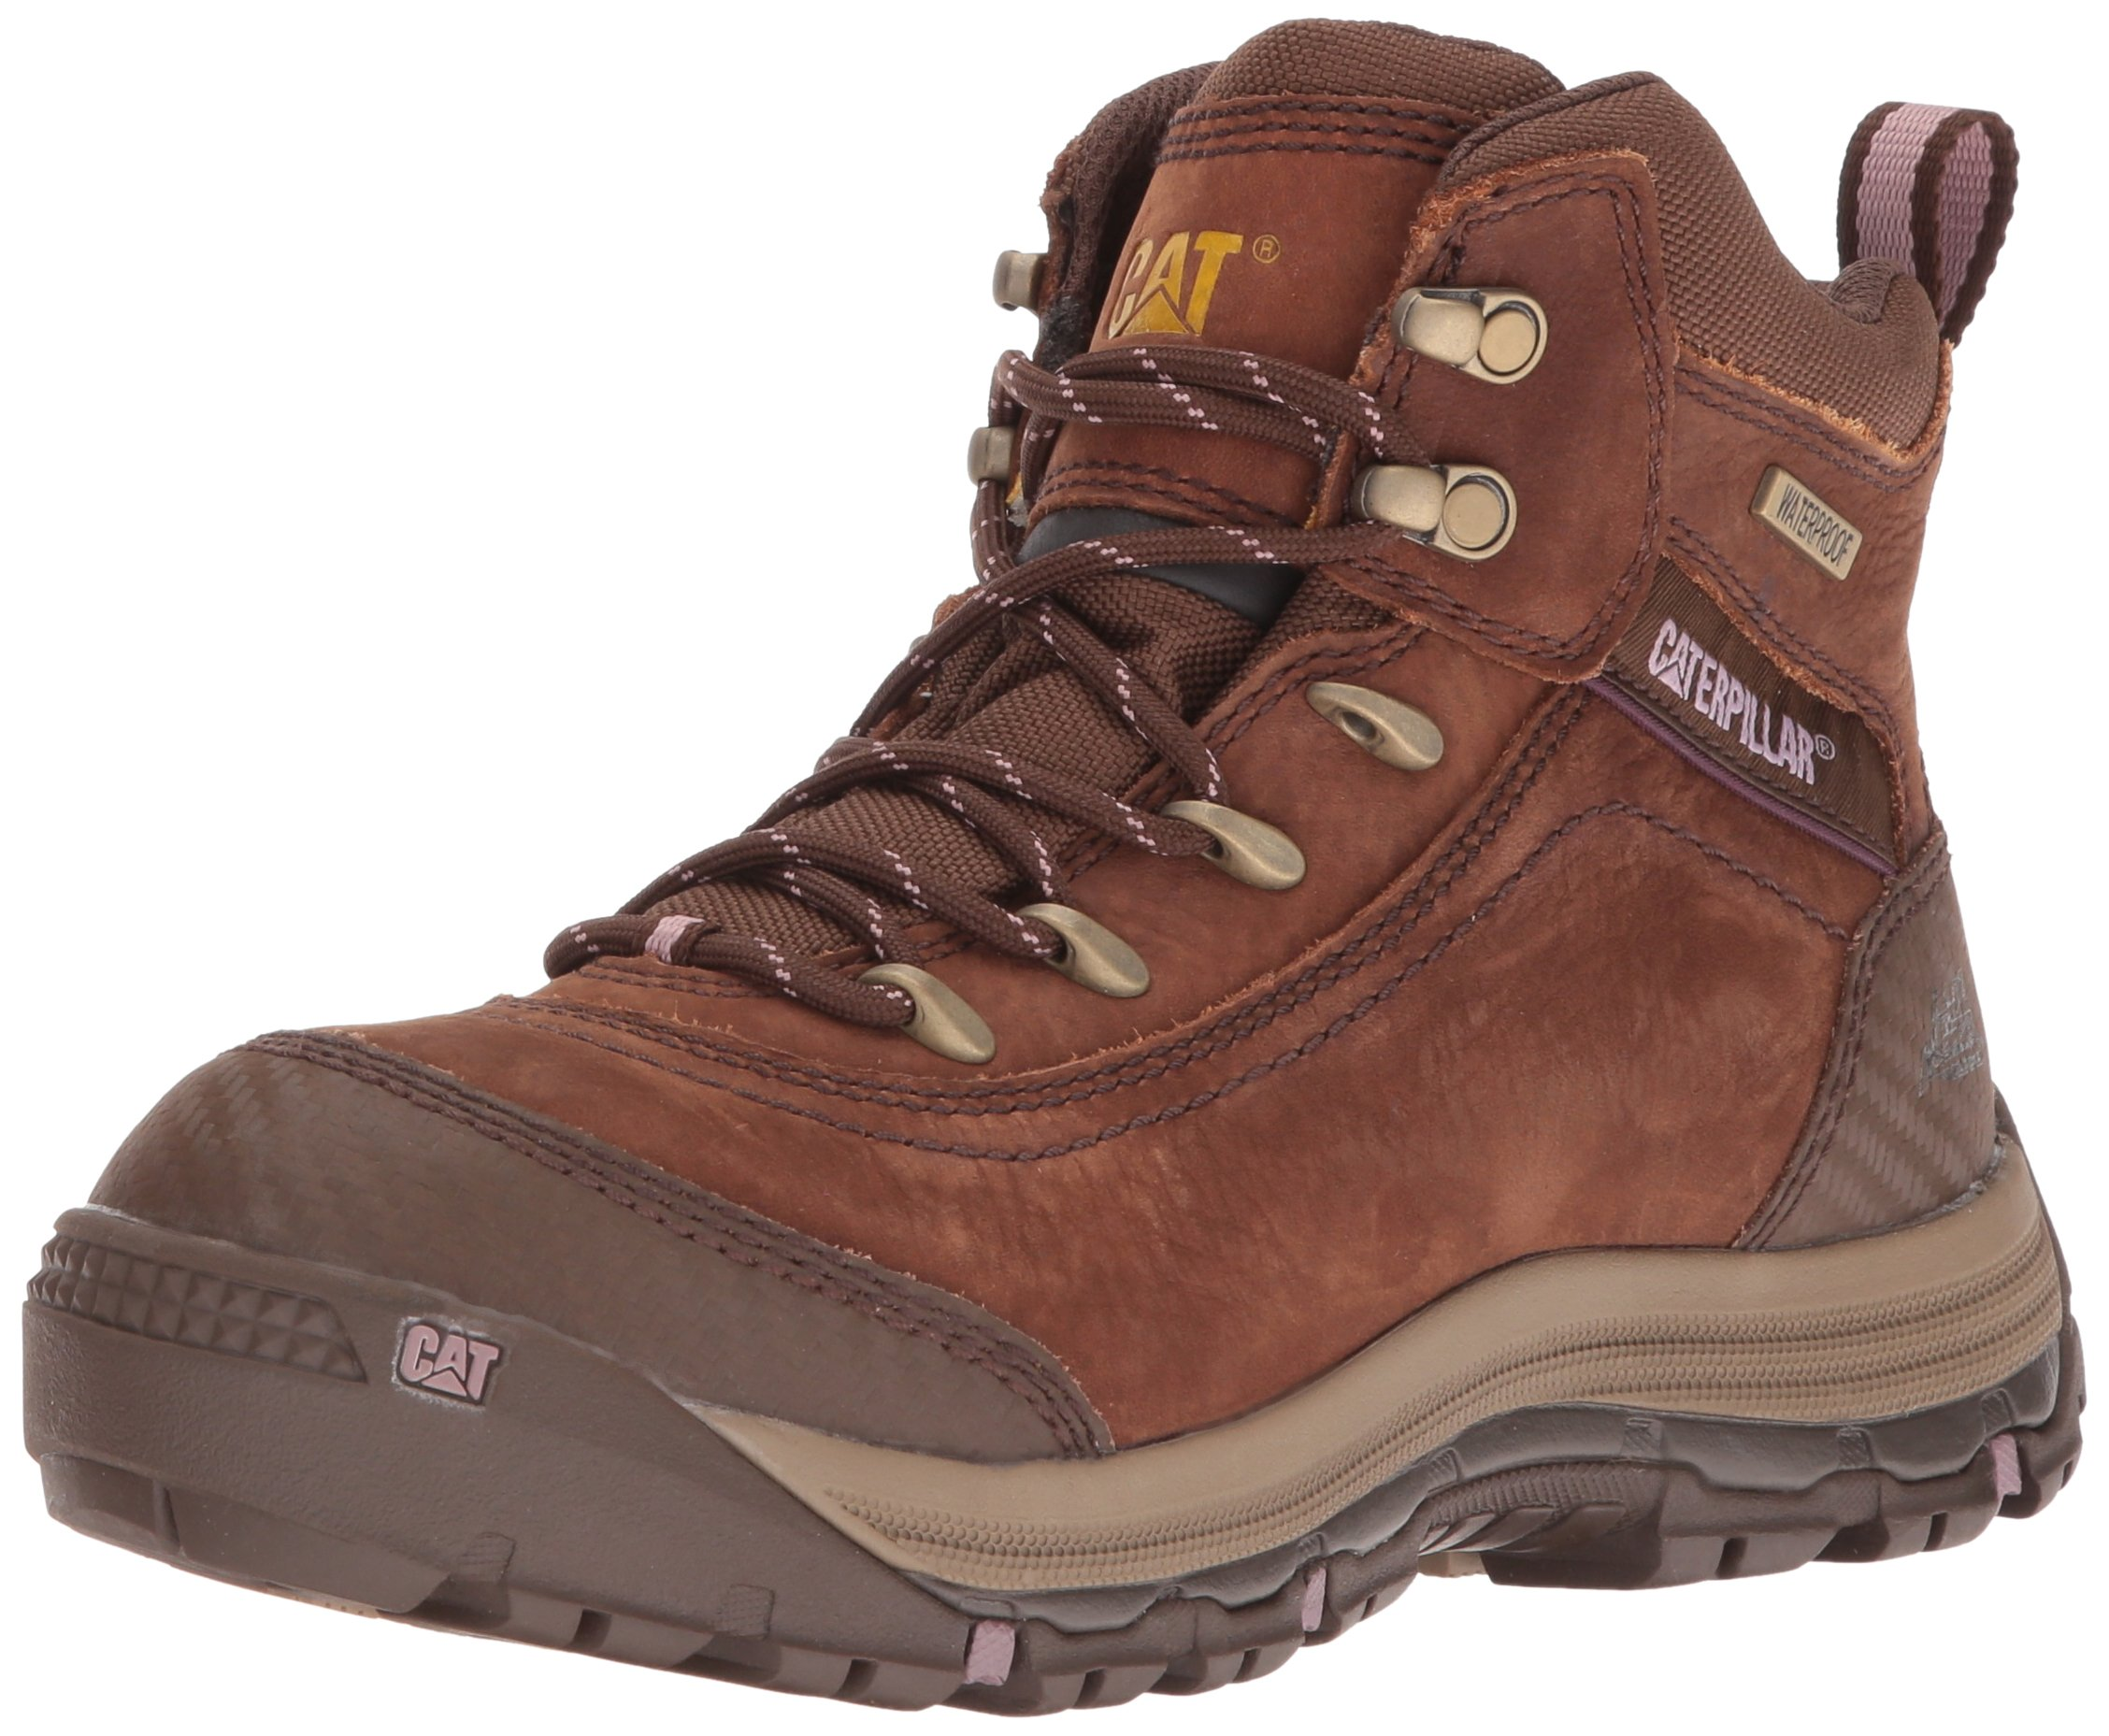 Caterpillar Women's Ally 6'' Waterproof Industrial and Construction Shoe, Brown, 8 W US